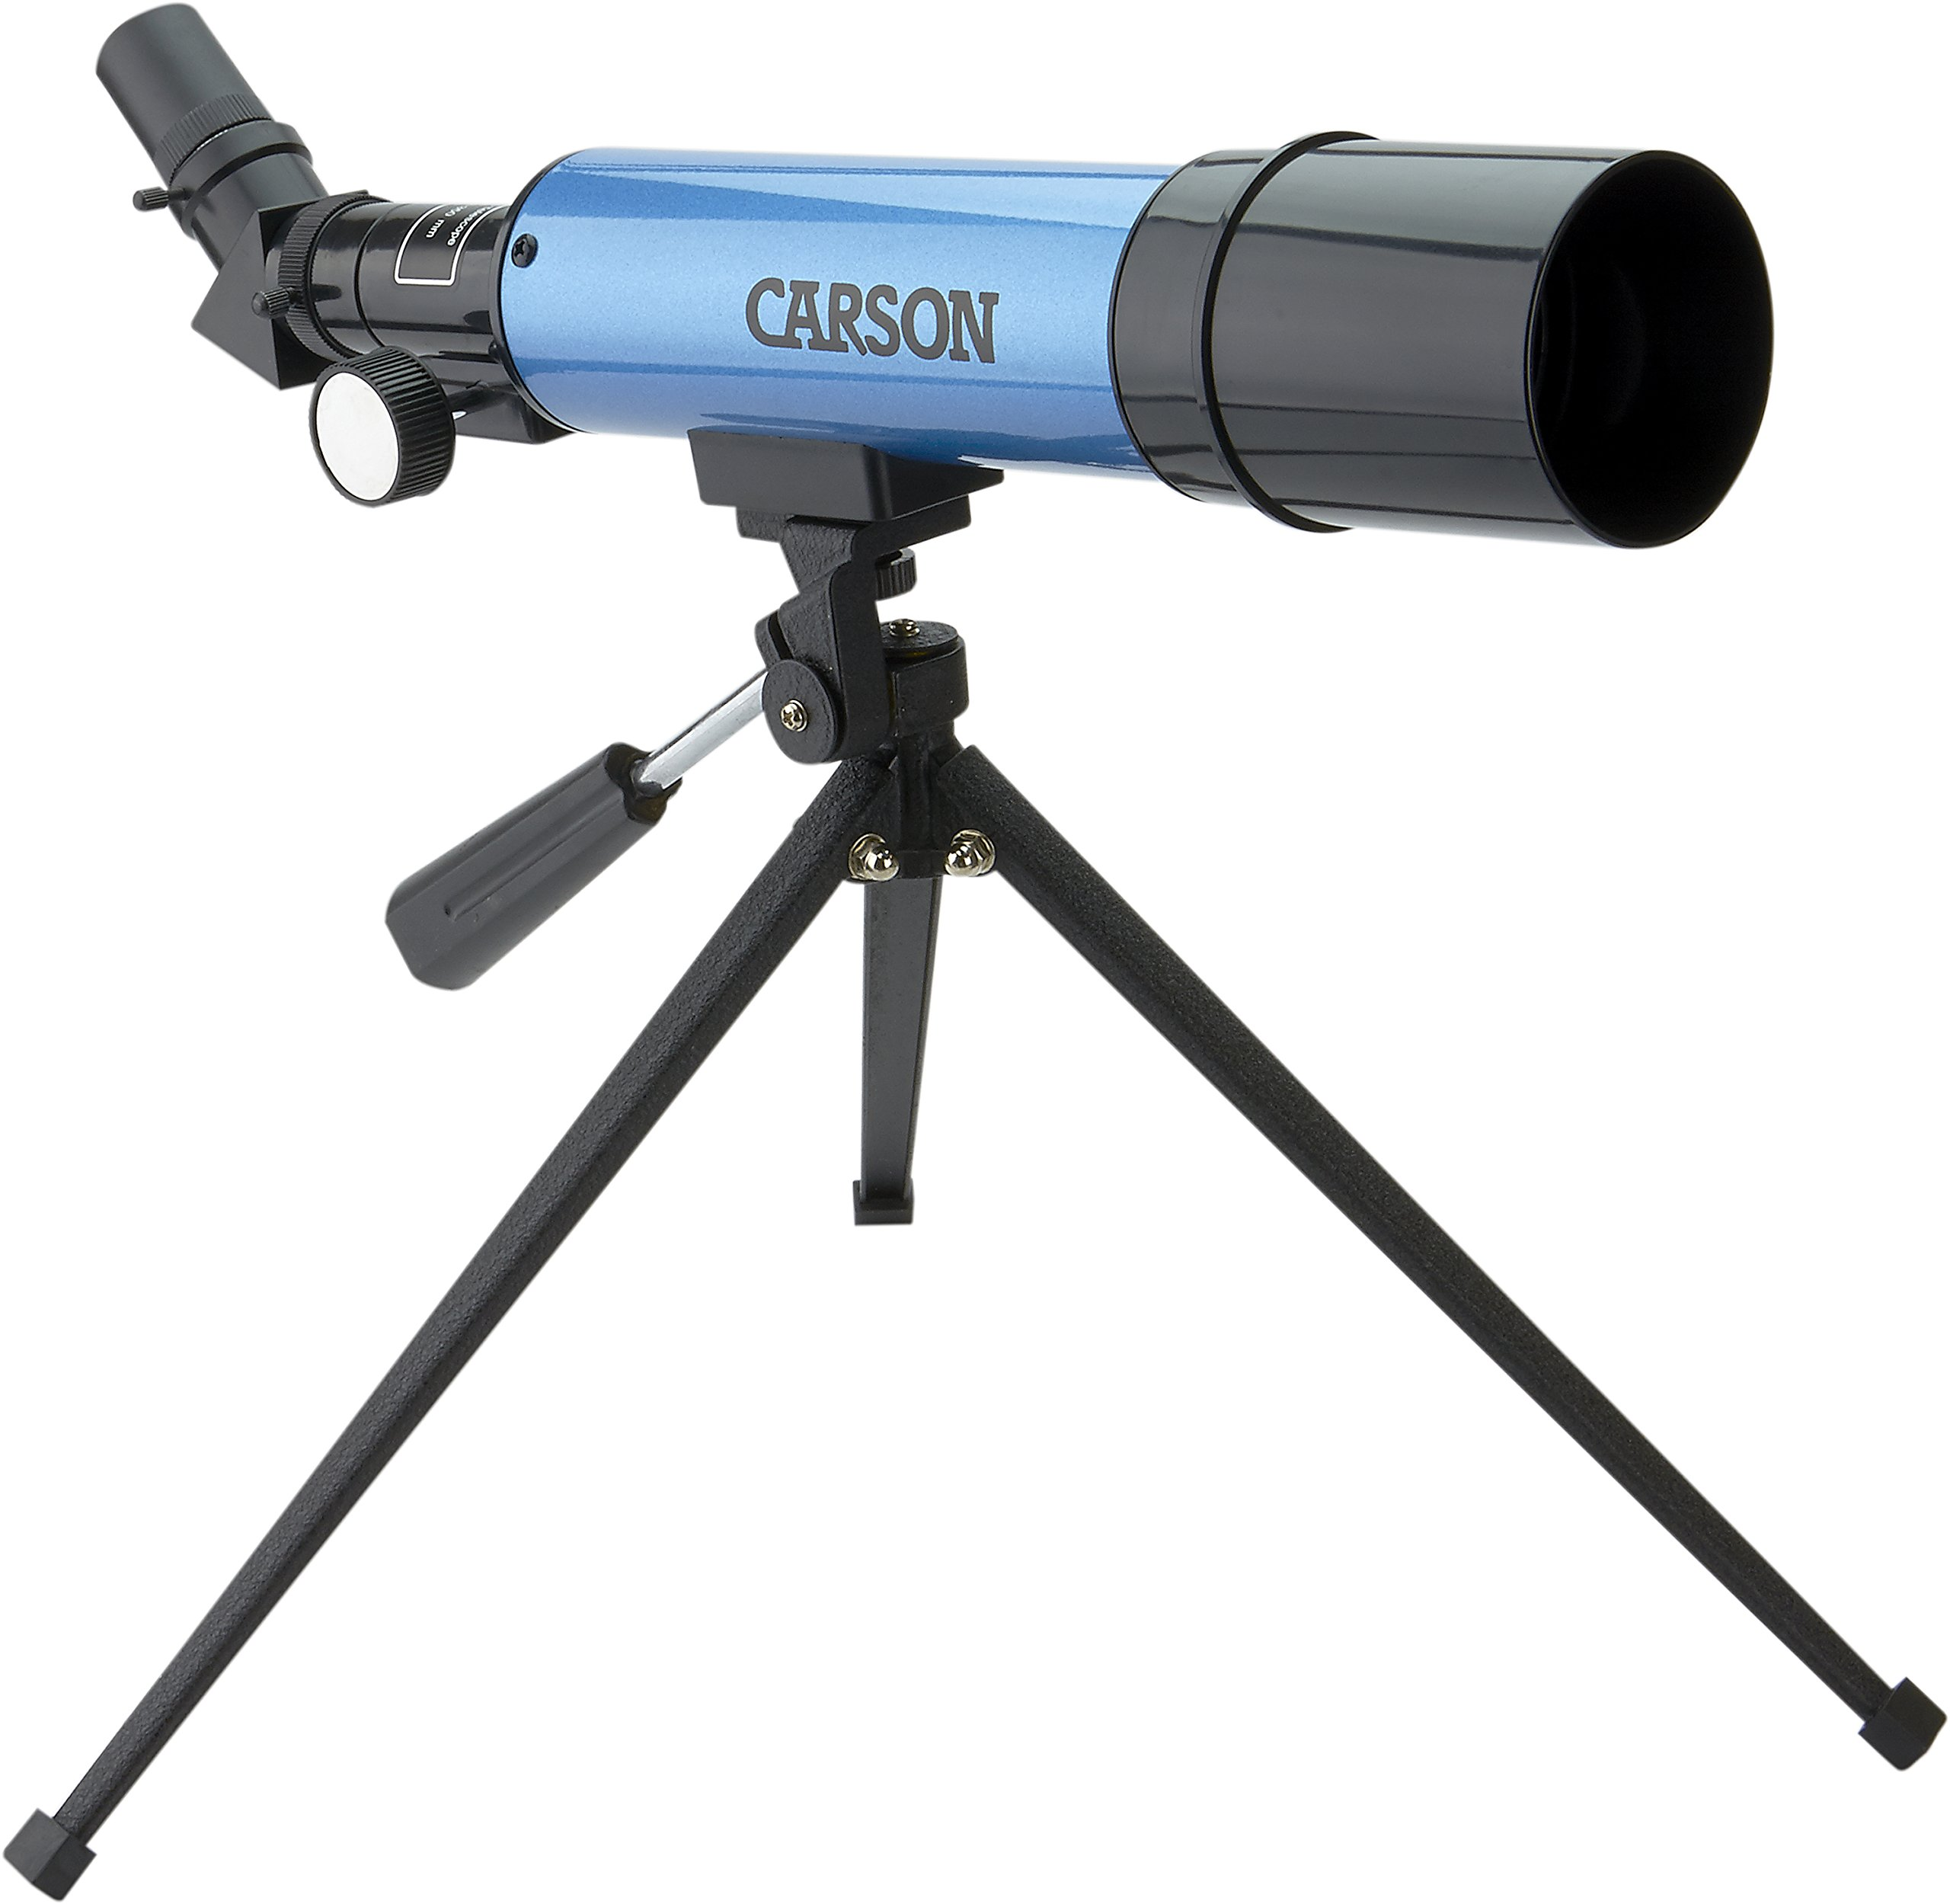 Carson Aim Refractor Type 18x-80x Power Telescope with Tabletop Tripod (MTEL-50)